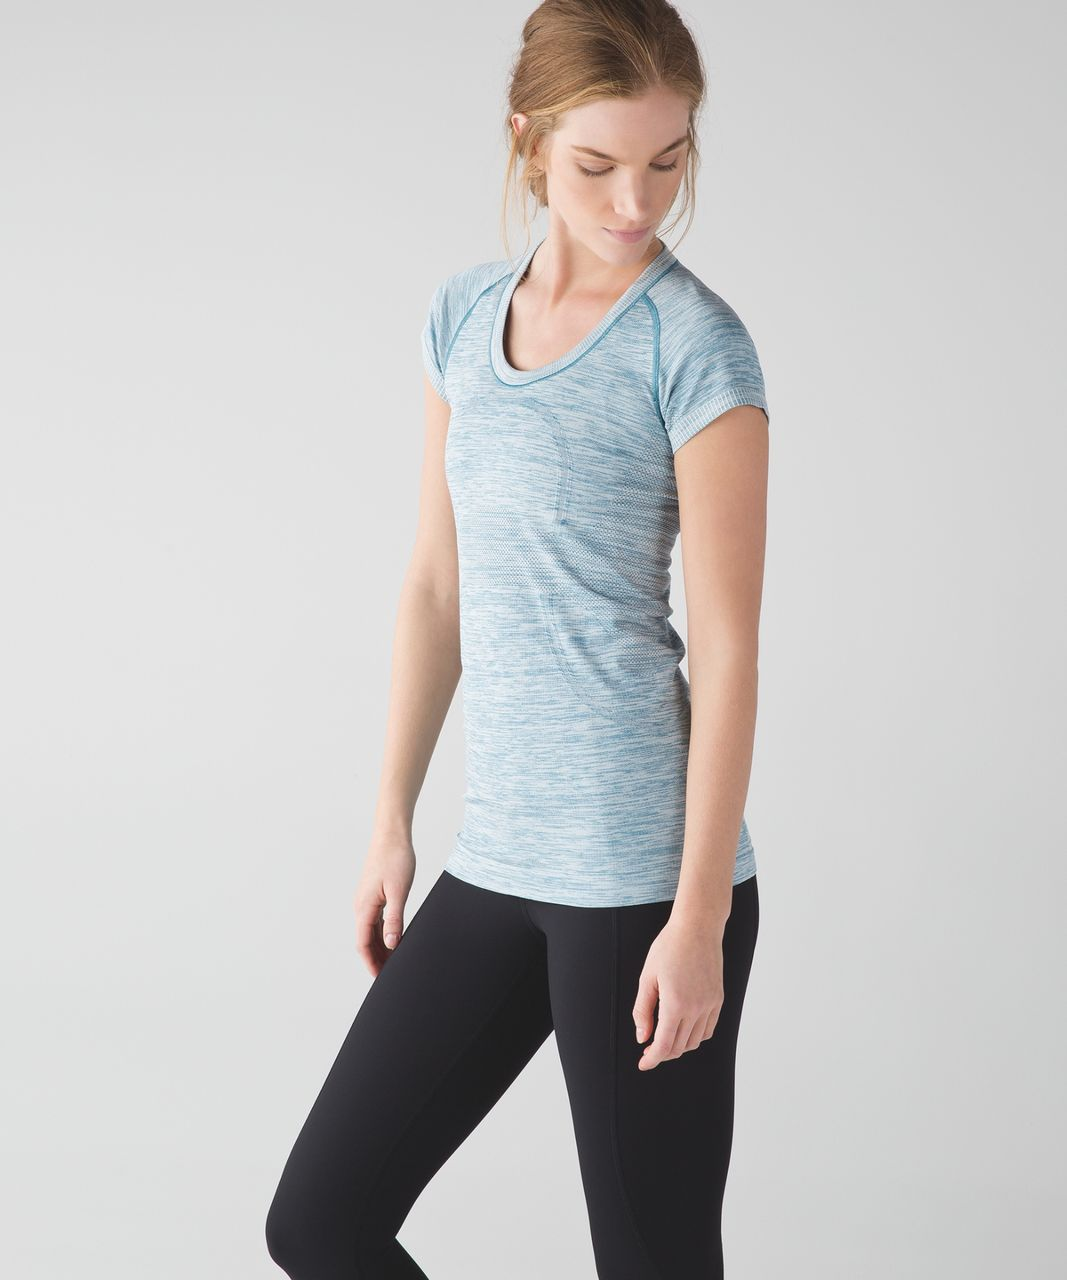 Lululemon Swiftly Tech Short Sleeve Scoop - Heathered Tofino Teal